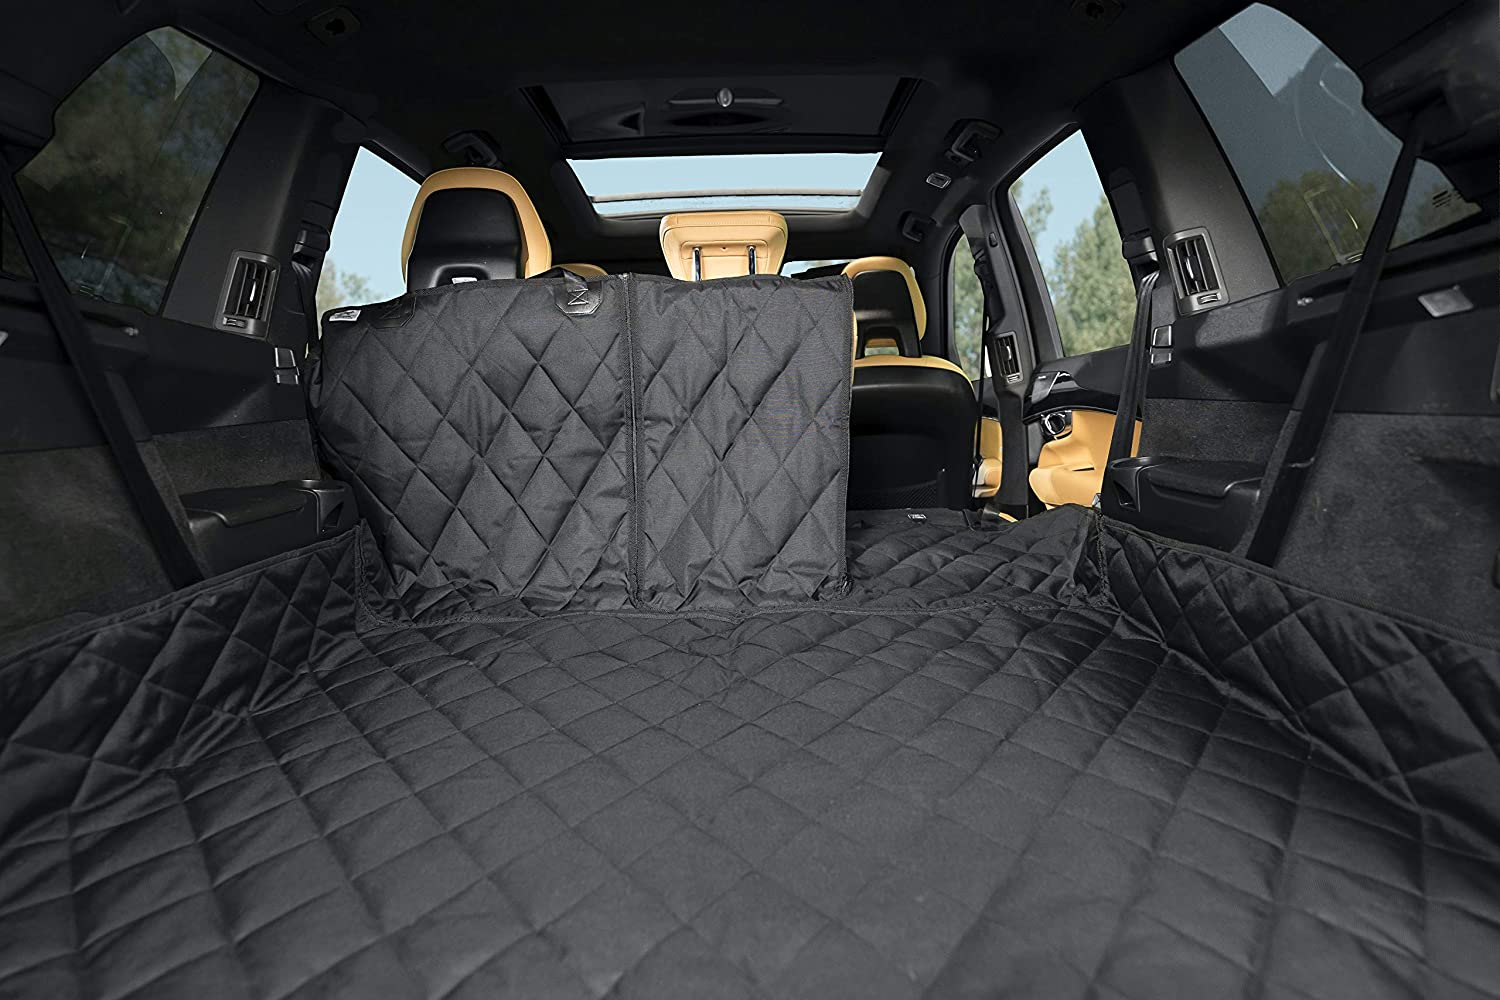 Plush Paws Waterproof Cargo Liner with Bumper and Side Panels, Large (Black) : Pet Supplies